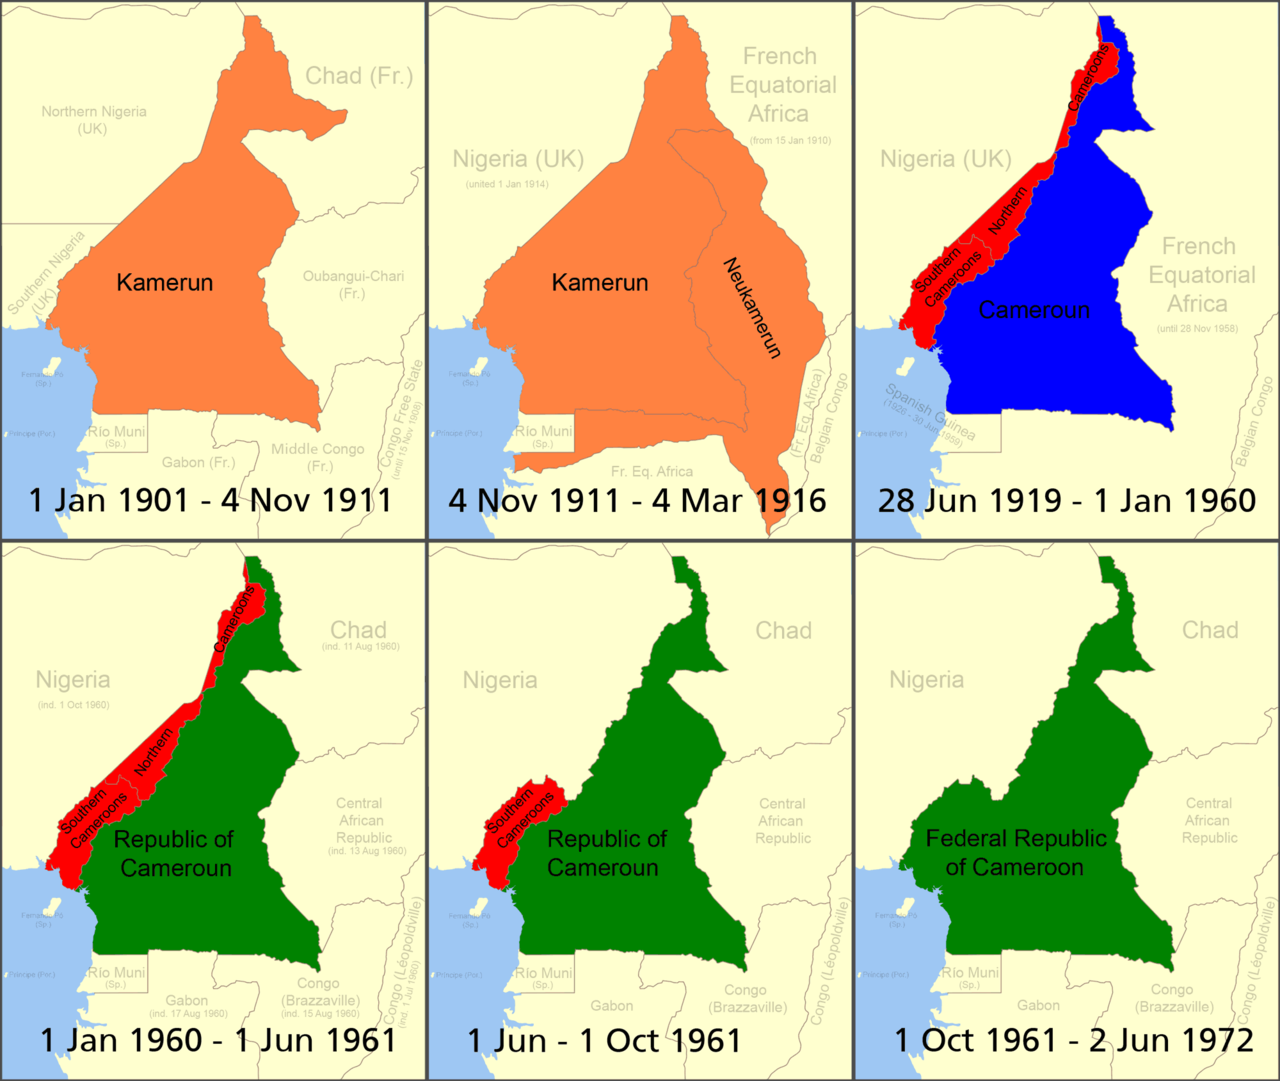 Cameroon Boundary Changes Through 1972